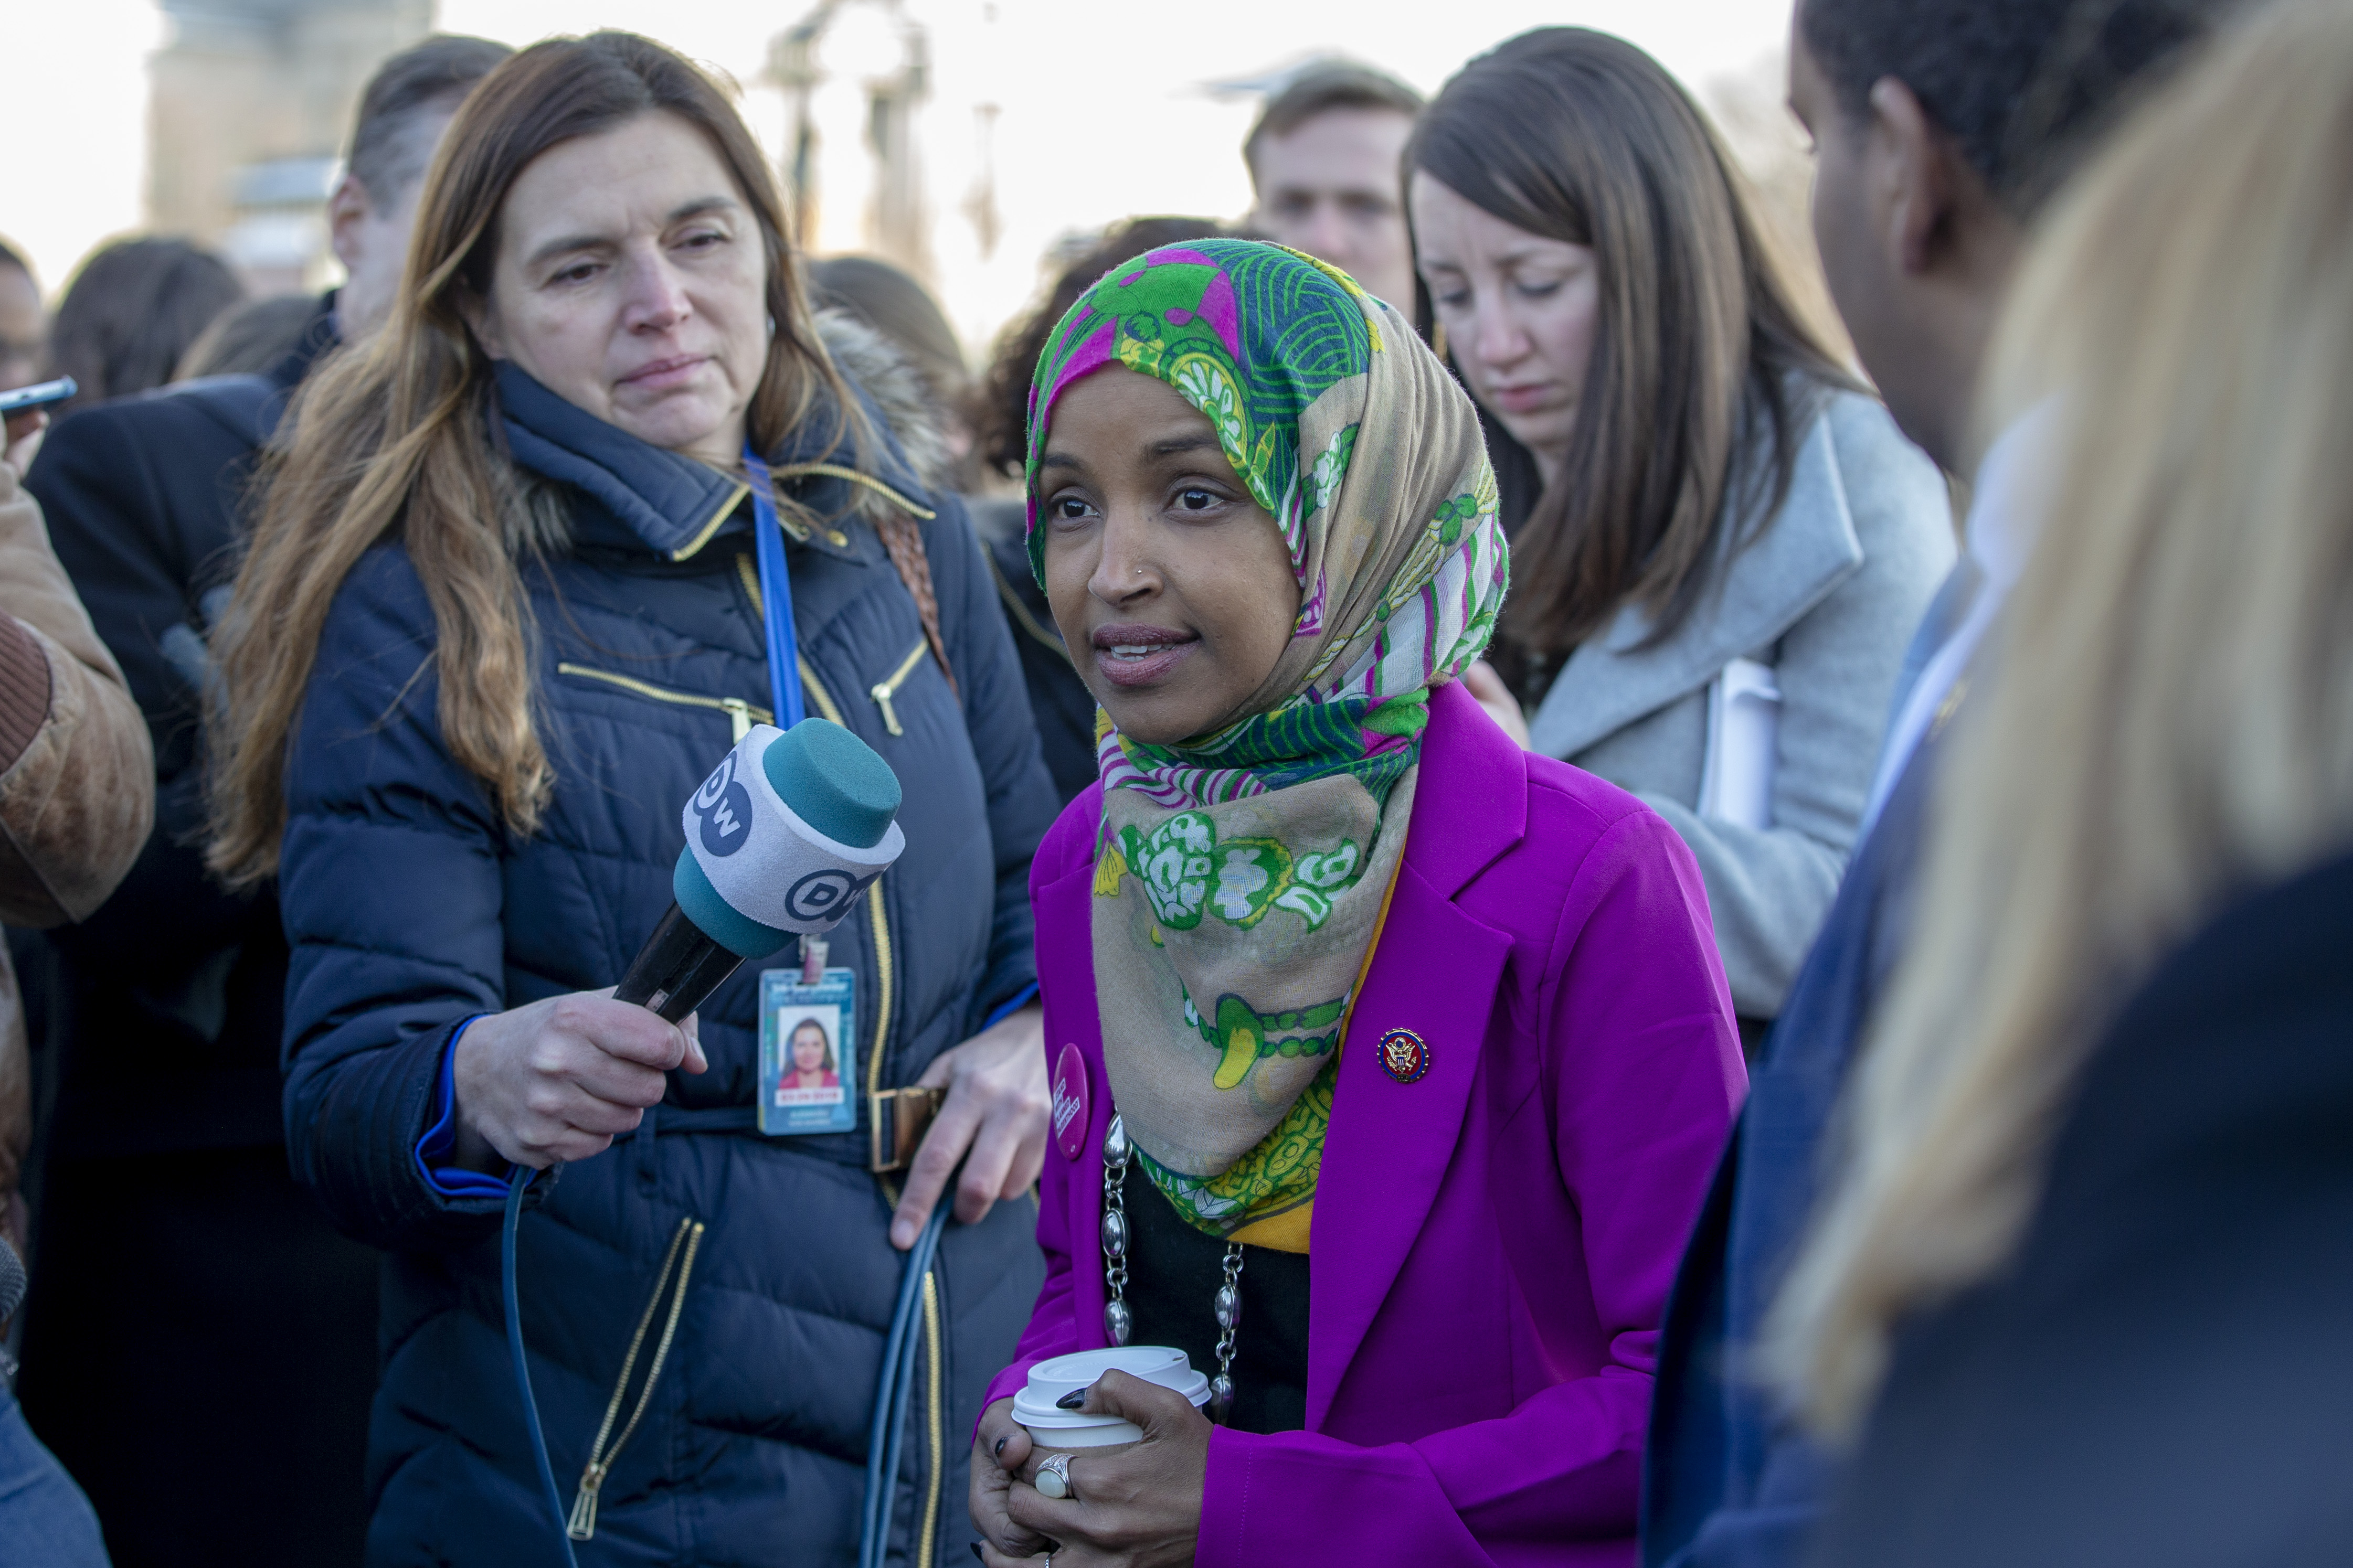 Ilhan Omar Calls Israel Undemocratic, Laments Strong U.S. Support